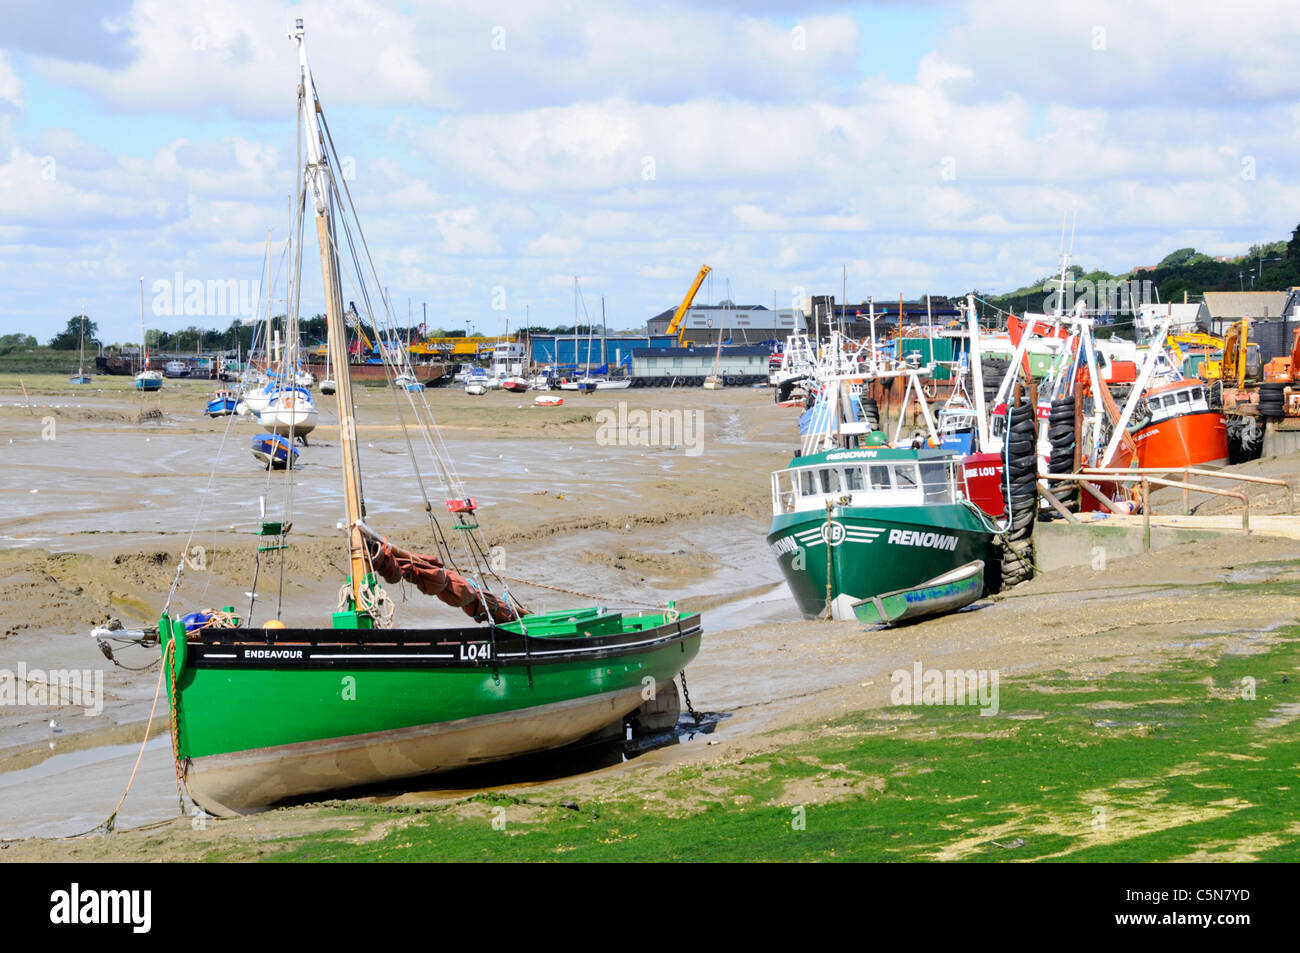 Historic restored cockle boat Endeavour LO41 world war 2 Dunkirk Little Ships River Thames Estuary low tide Leigh - Stock Image